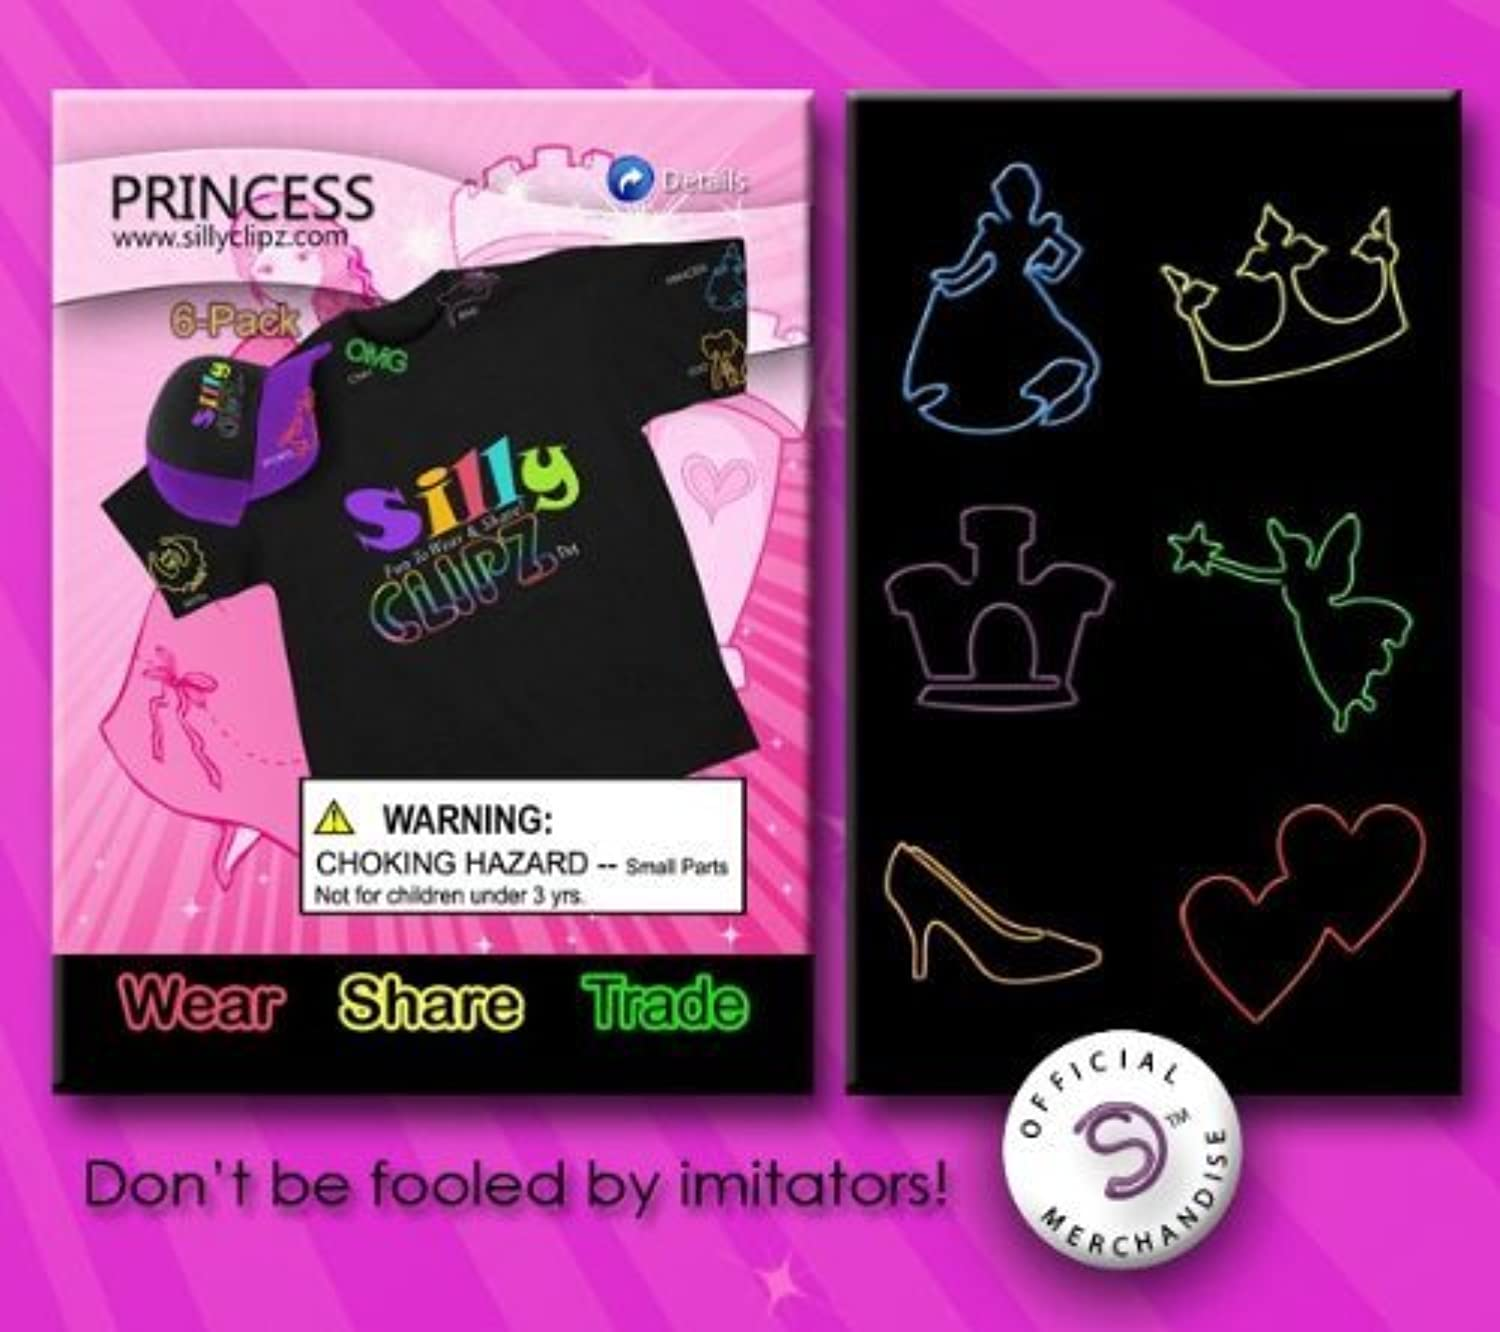 Silly Clipz  6 Pack colorful, Shaped, Wearable Paper Clips - PRINCESS